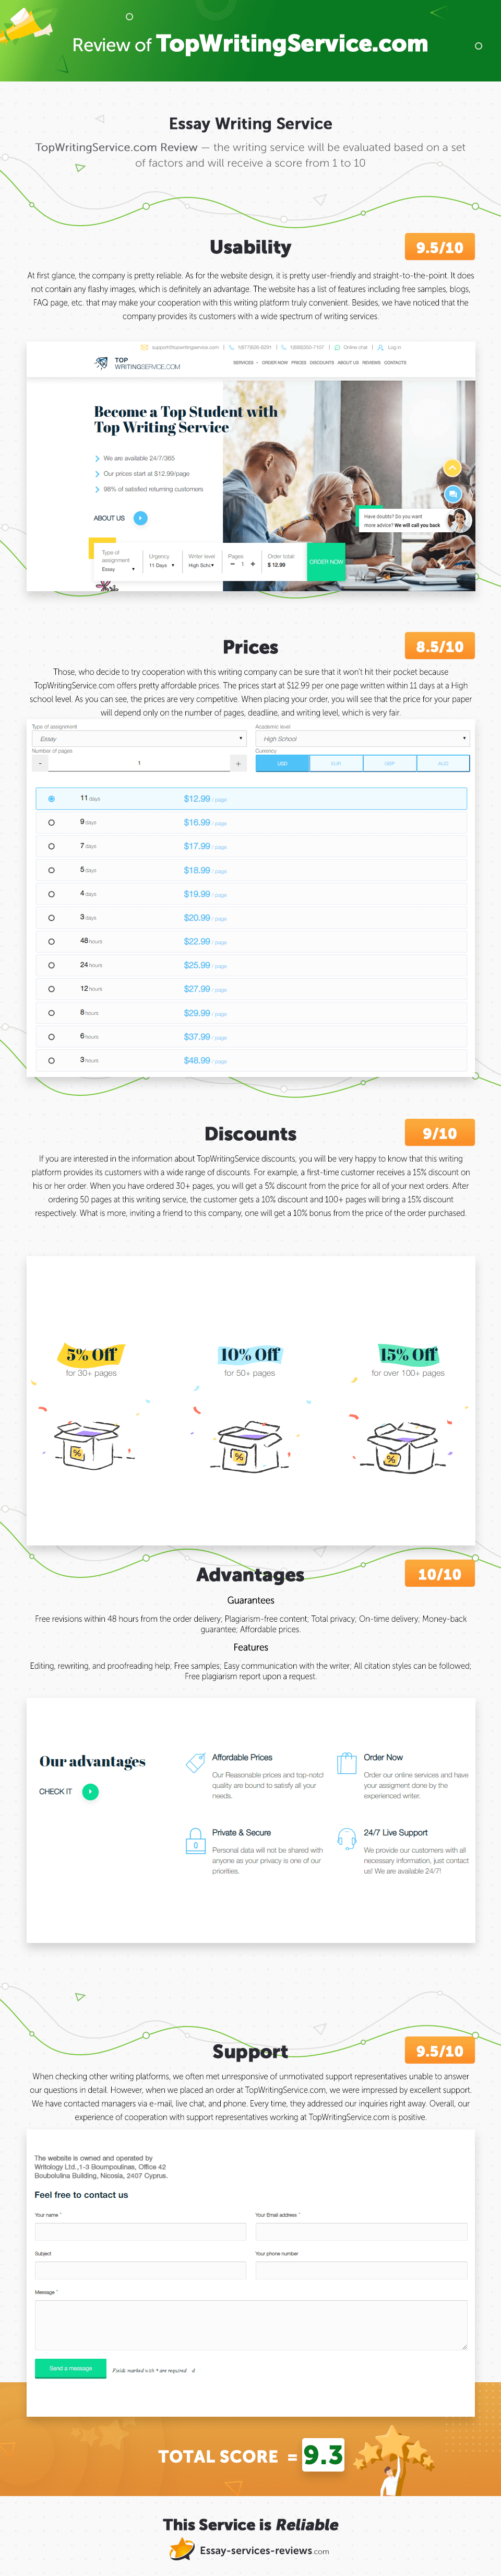 TopWritingService.com Infographic Review